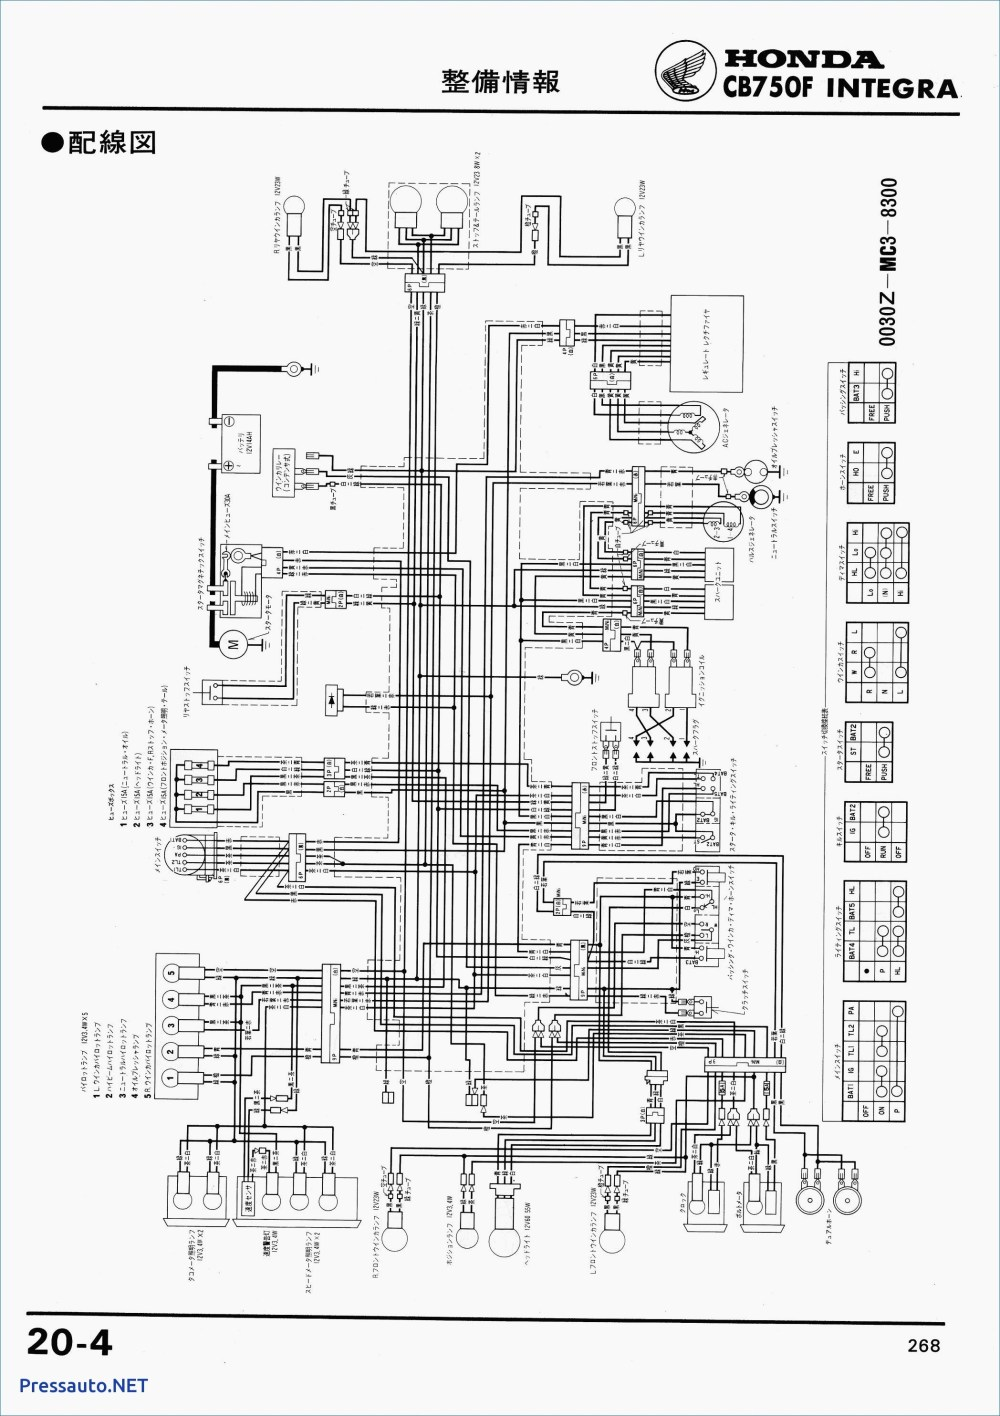 medium resolution of electric forklift wiring diagram honda bf75 wiring diagram new magnificent 74 rd 200 wiring diagram